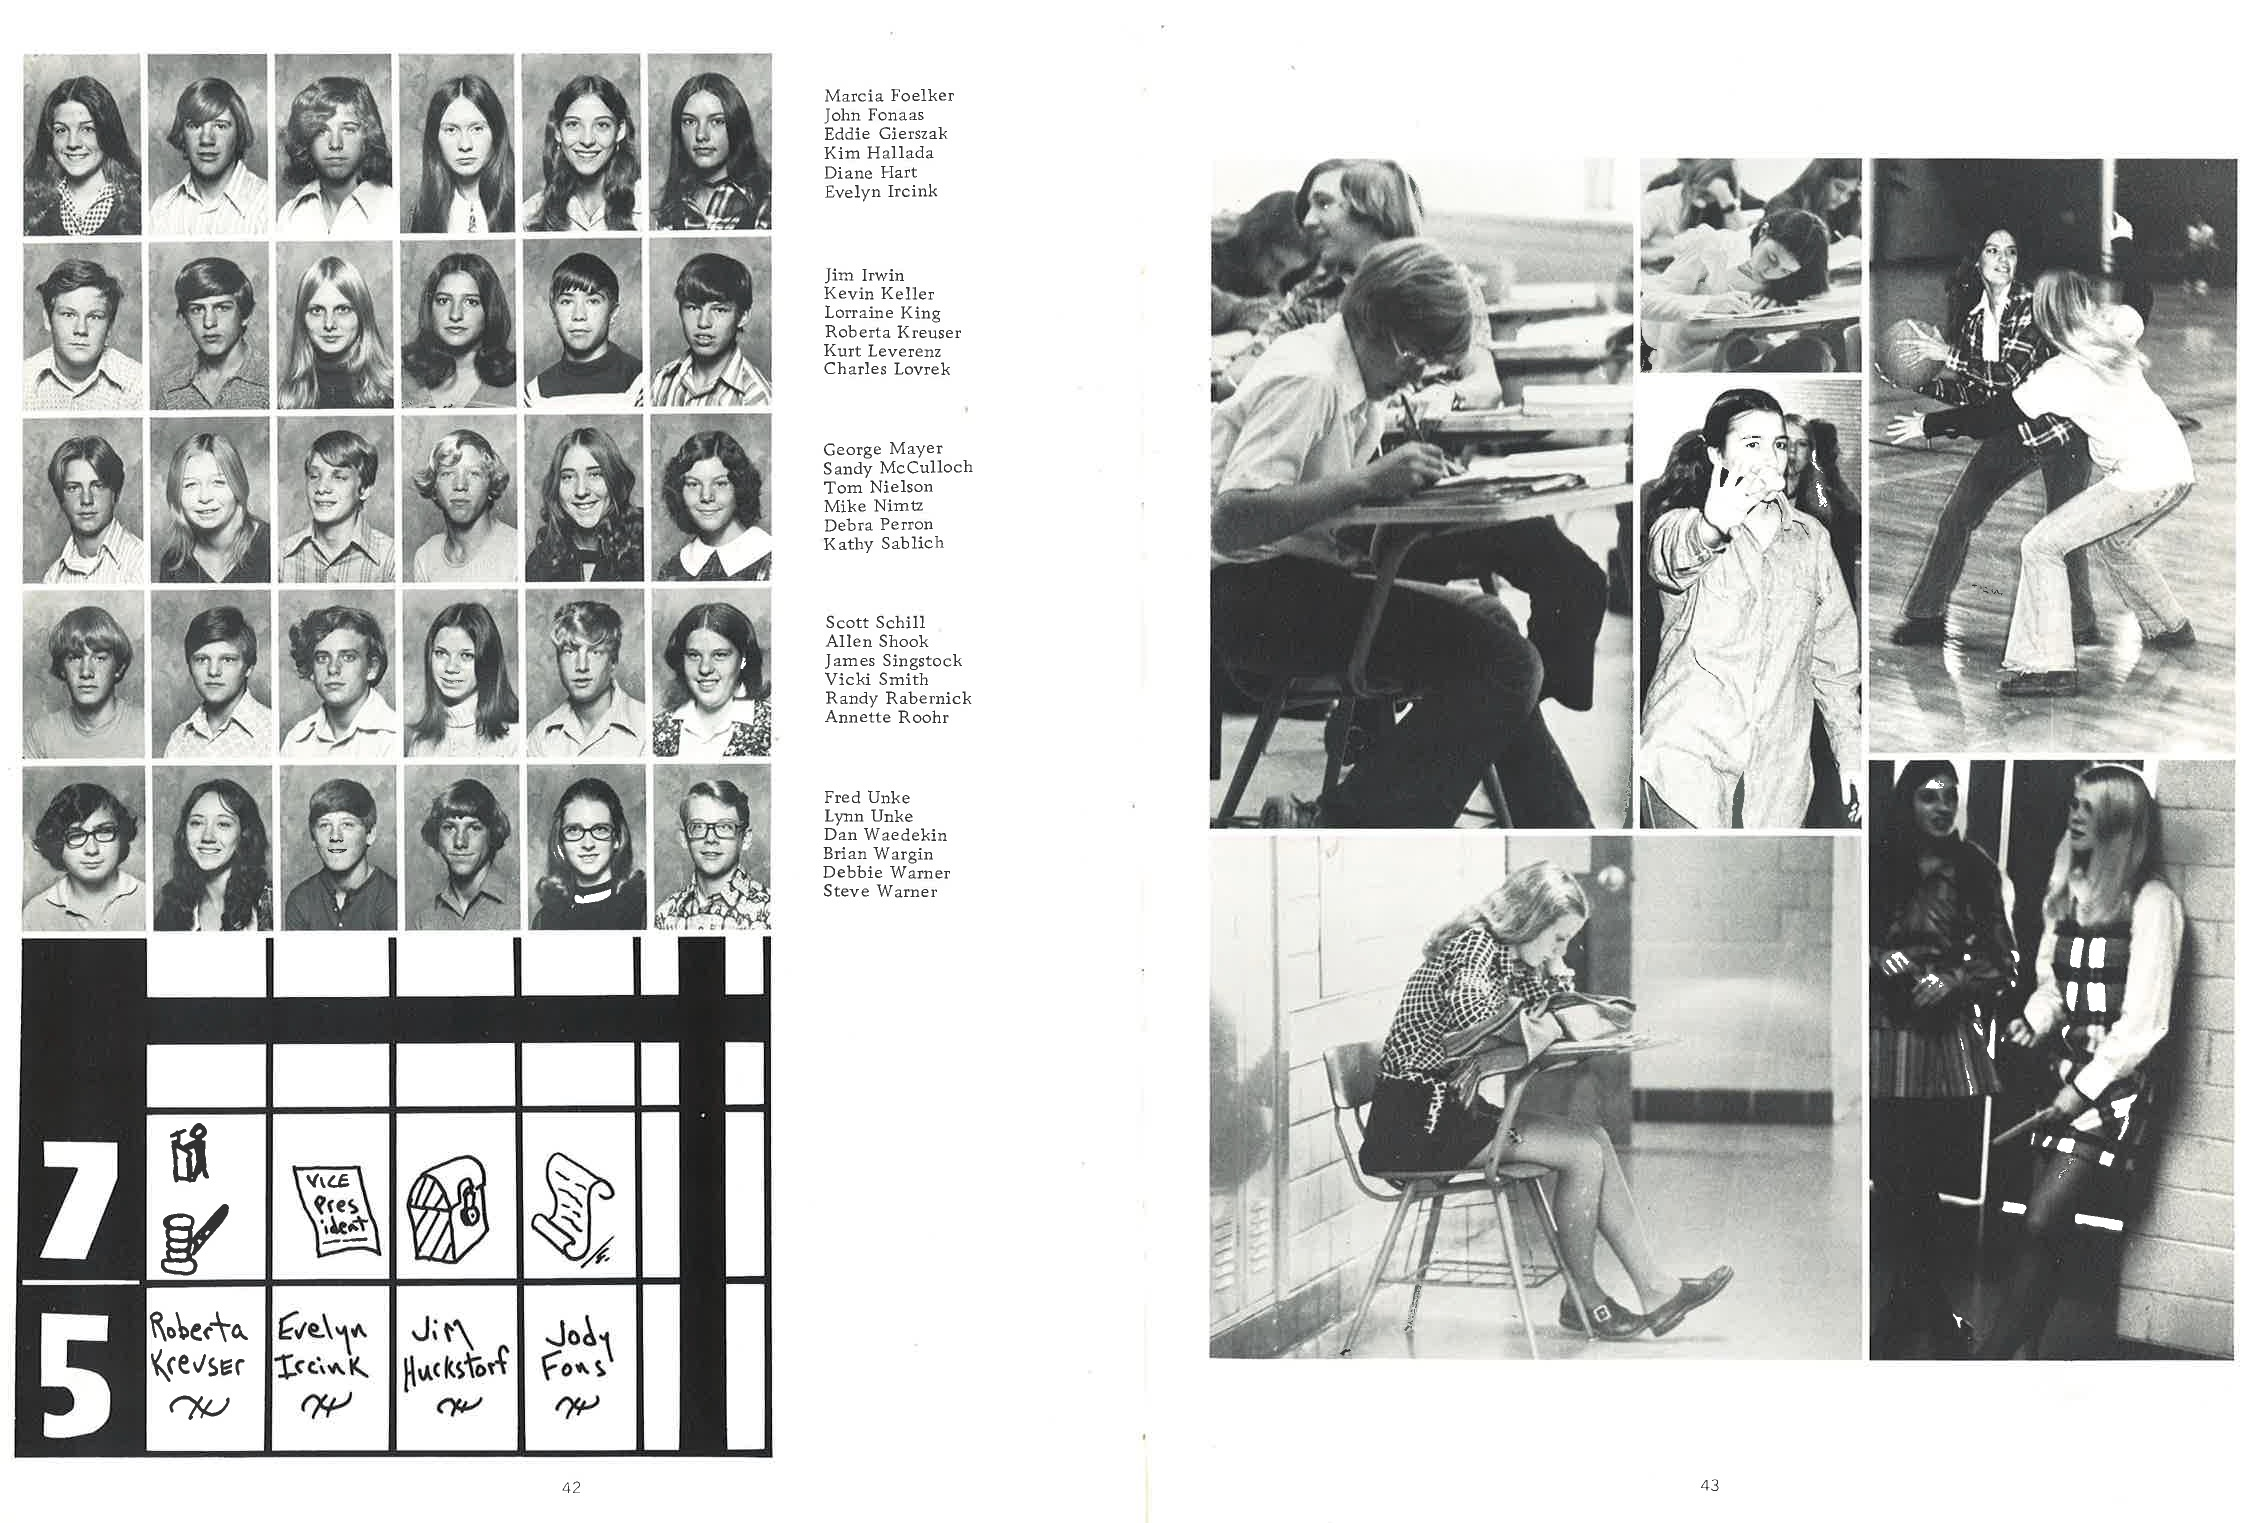 1973_Yearbook_42-43.jpg